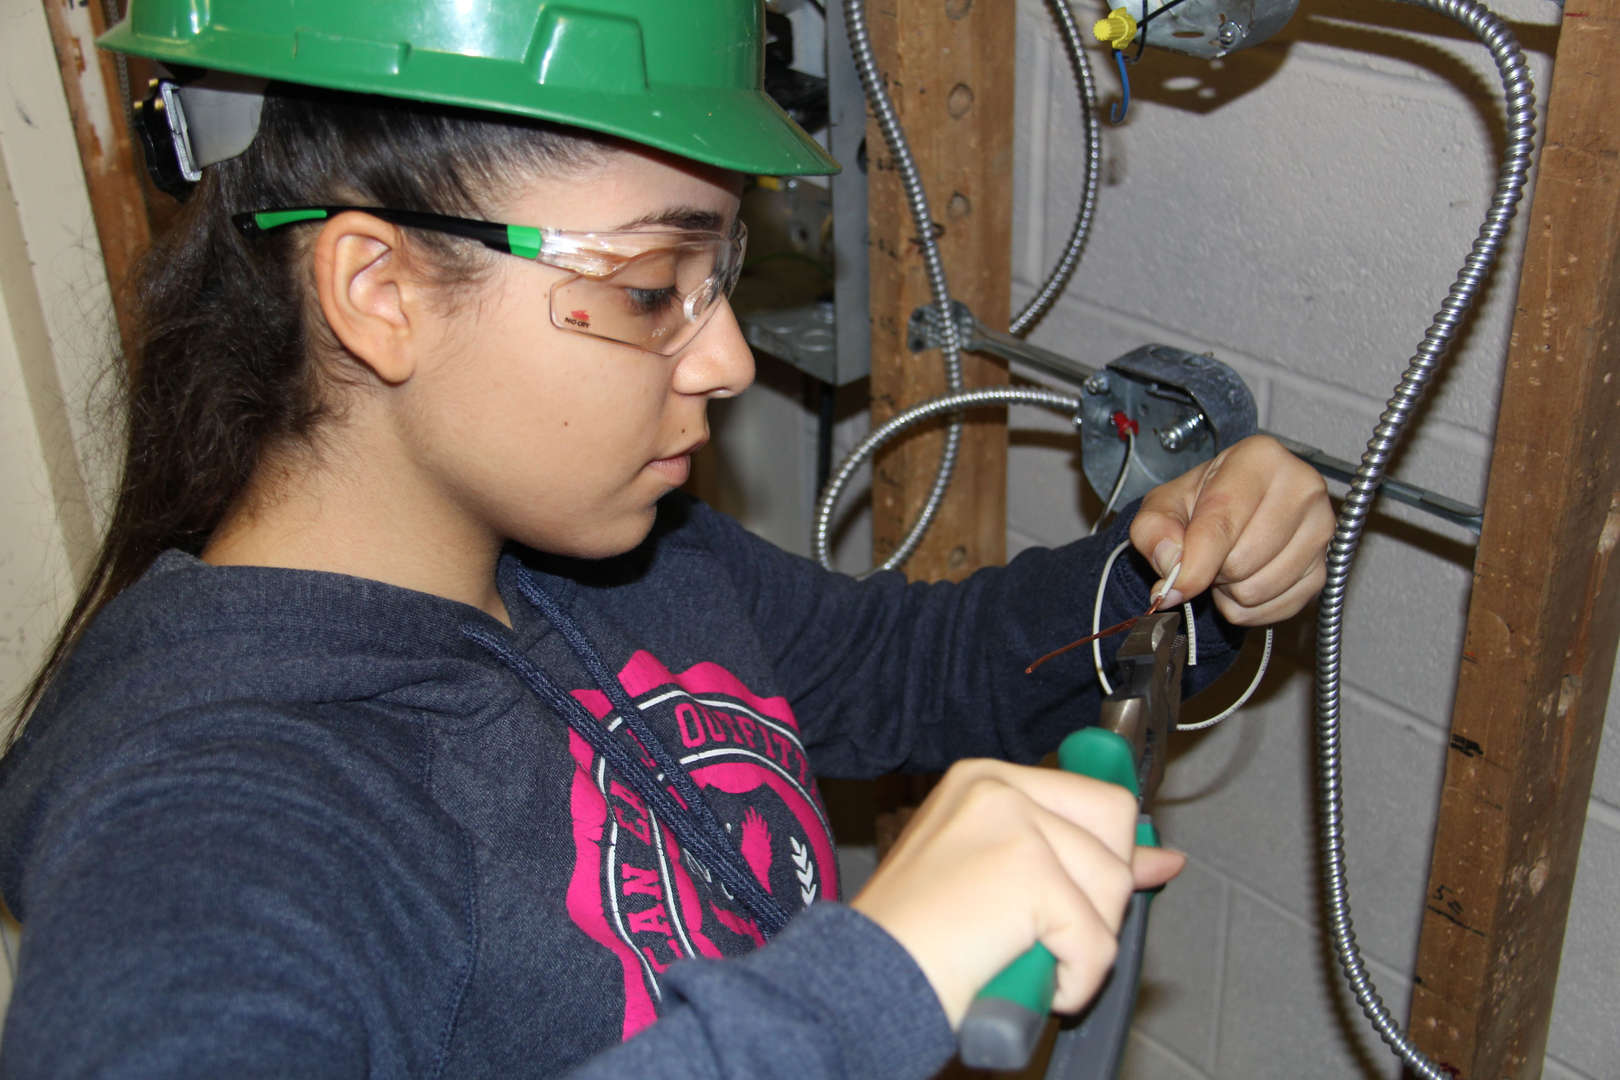 Student working in electrical installation